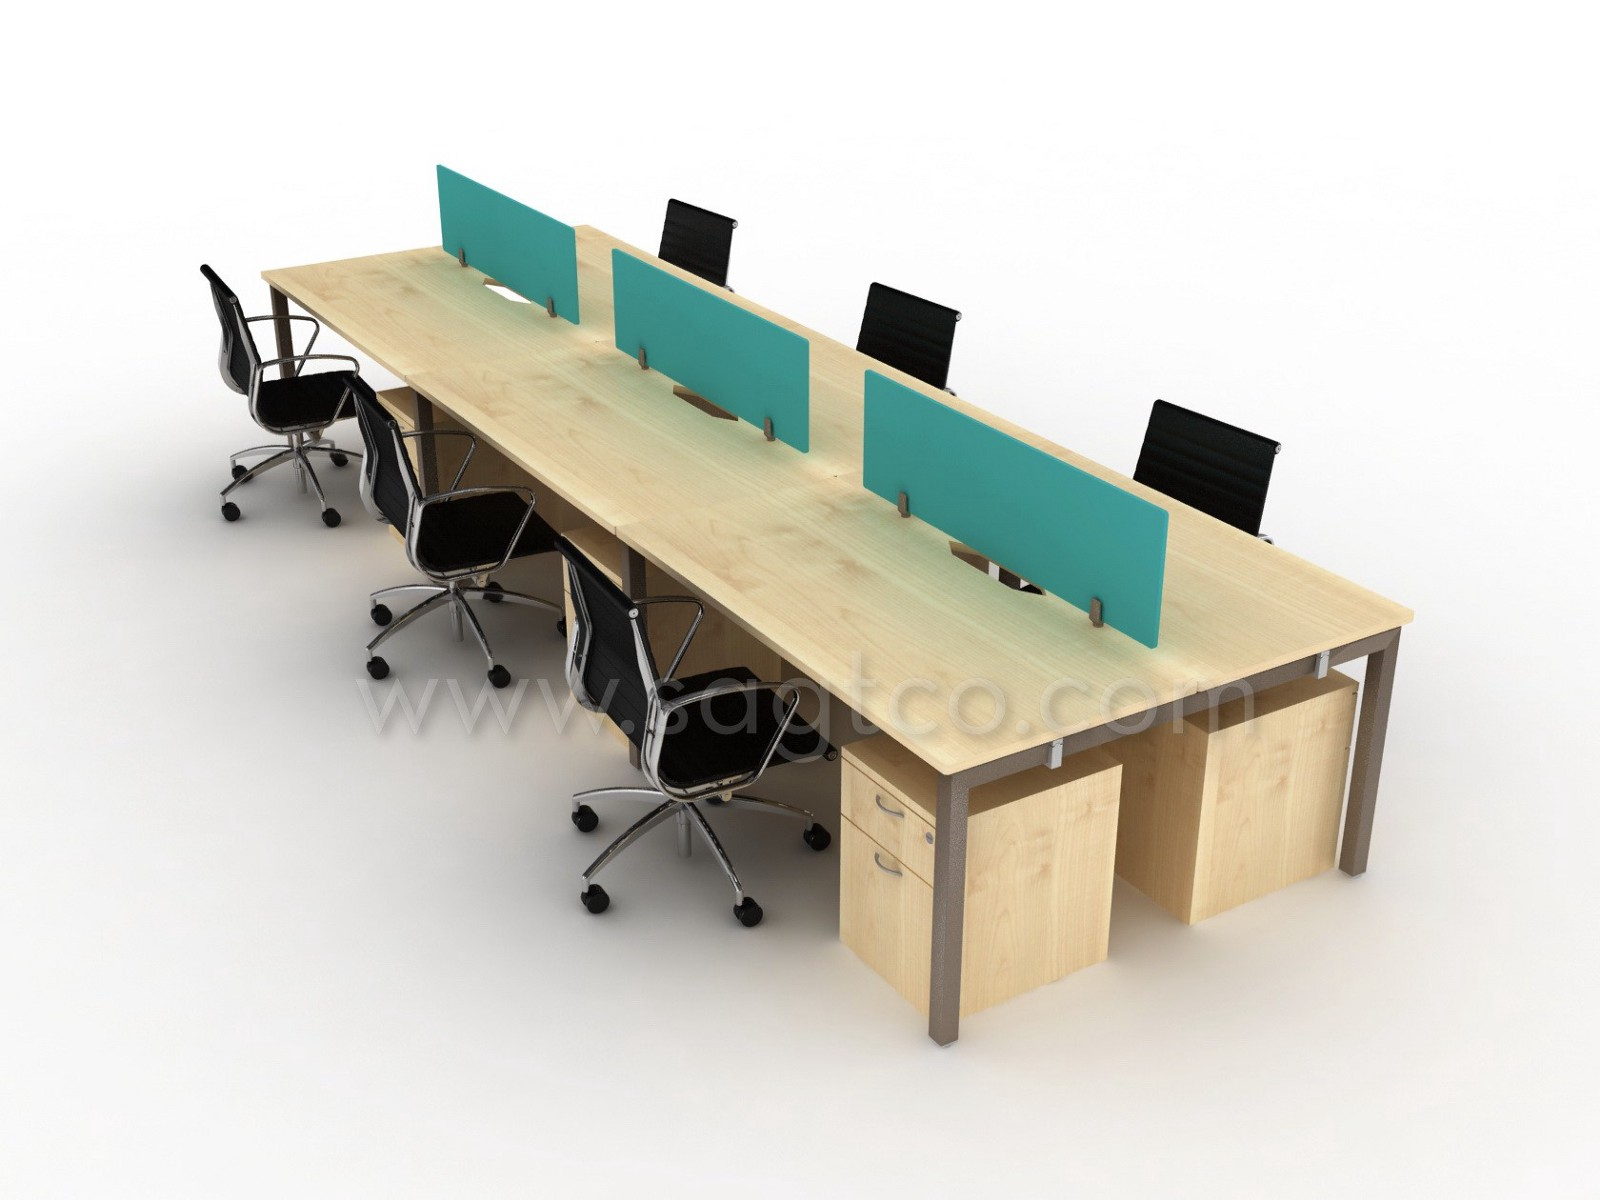 Workstation Furniture Office Workstations For Offices Design And Customized